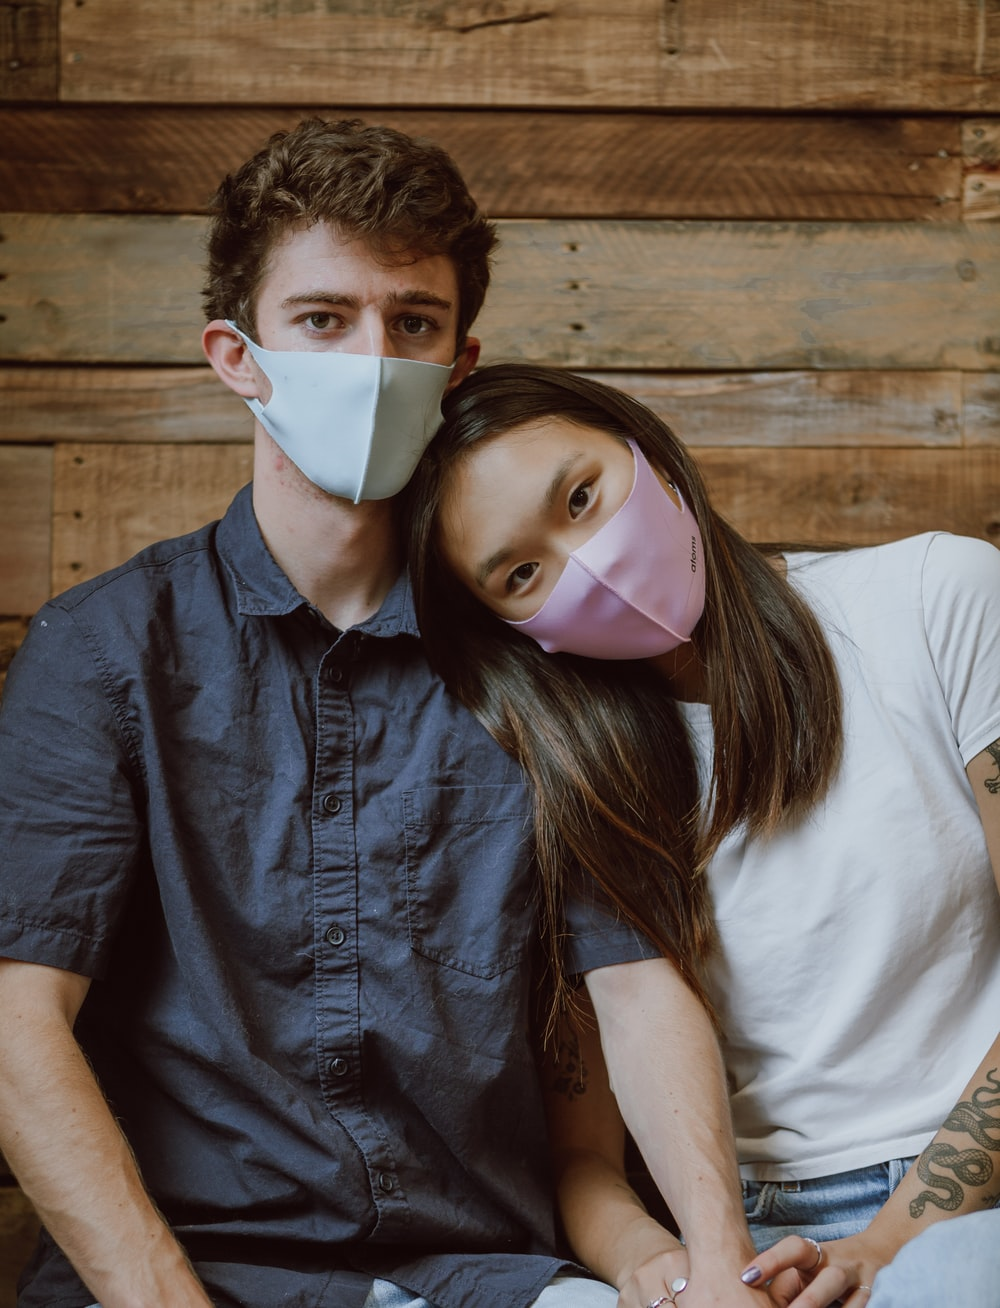 woman in white shirt and blue denim button up jacket with white face mask